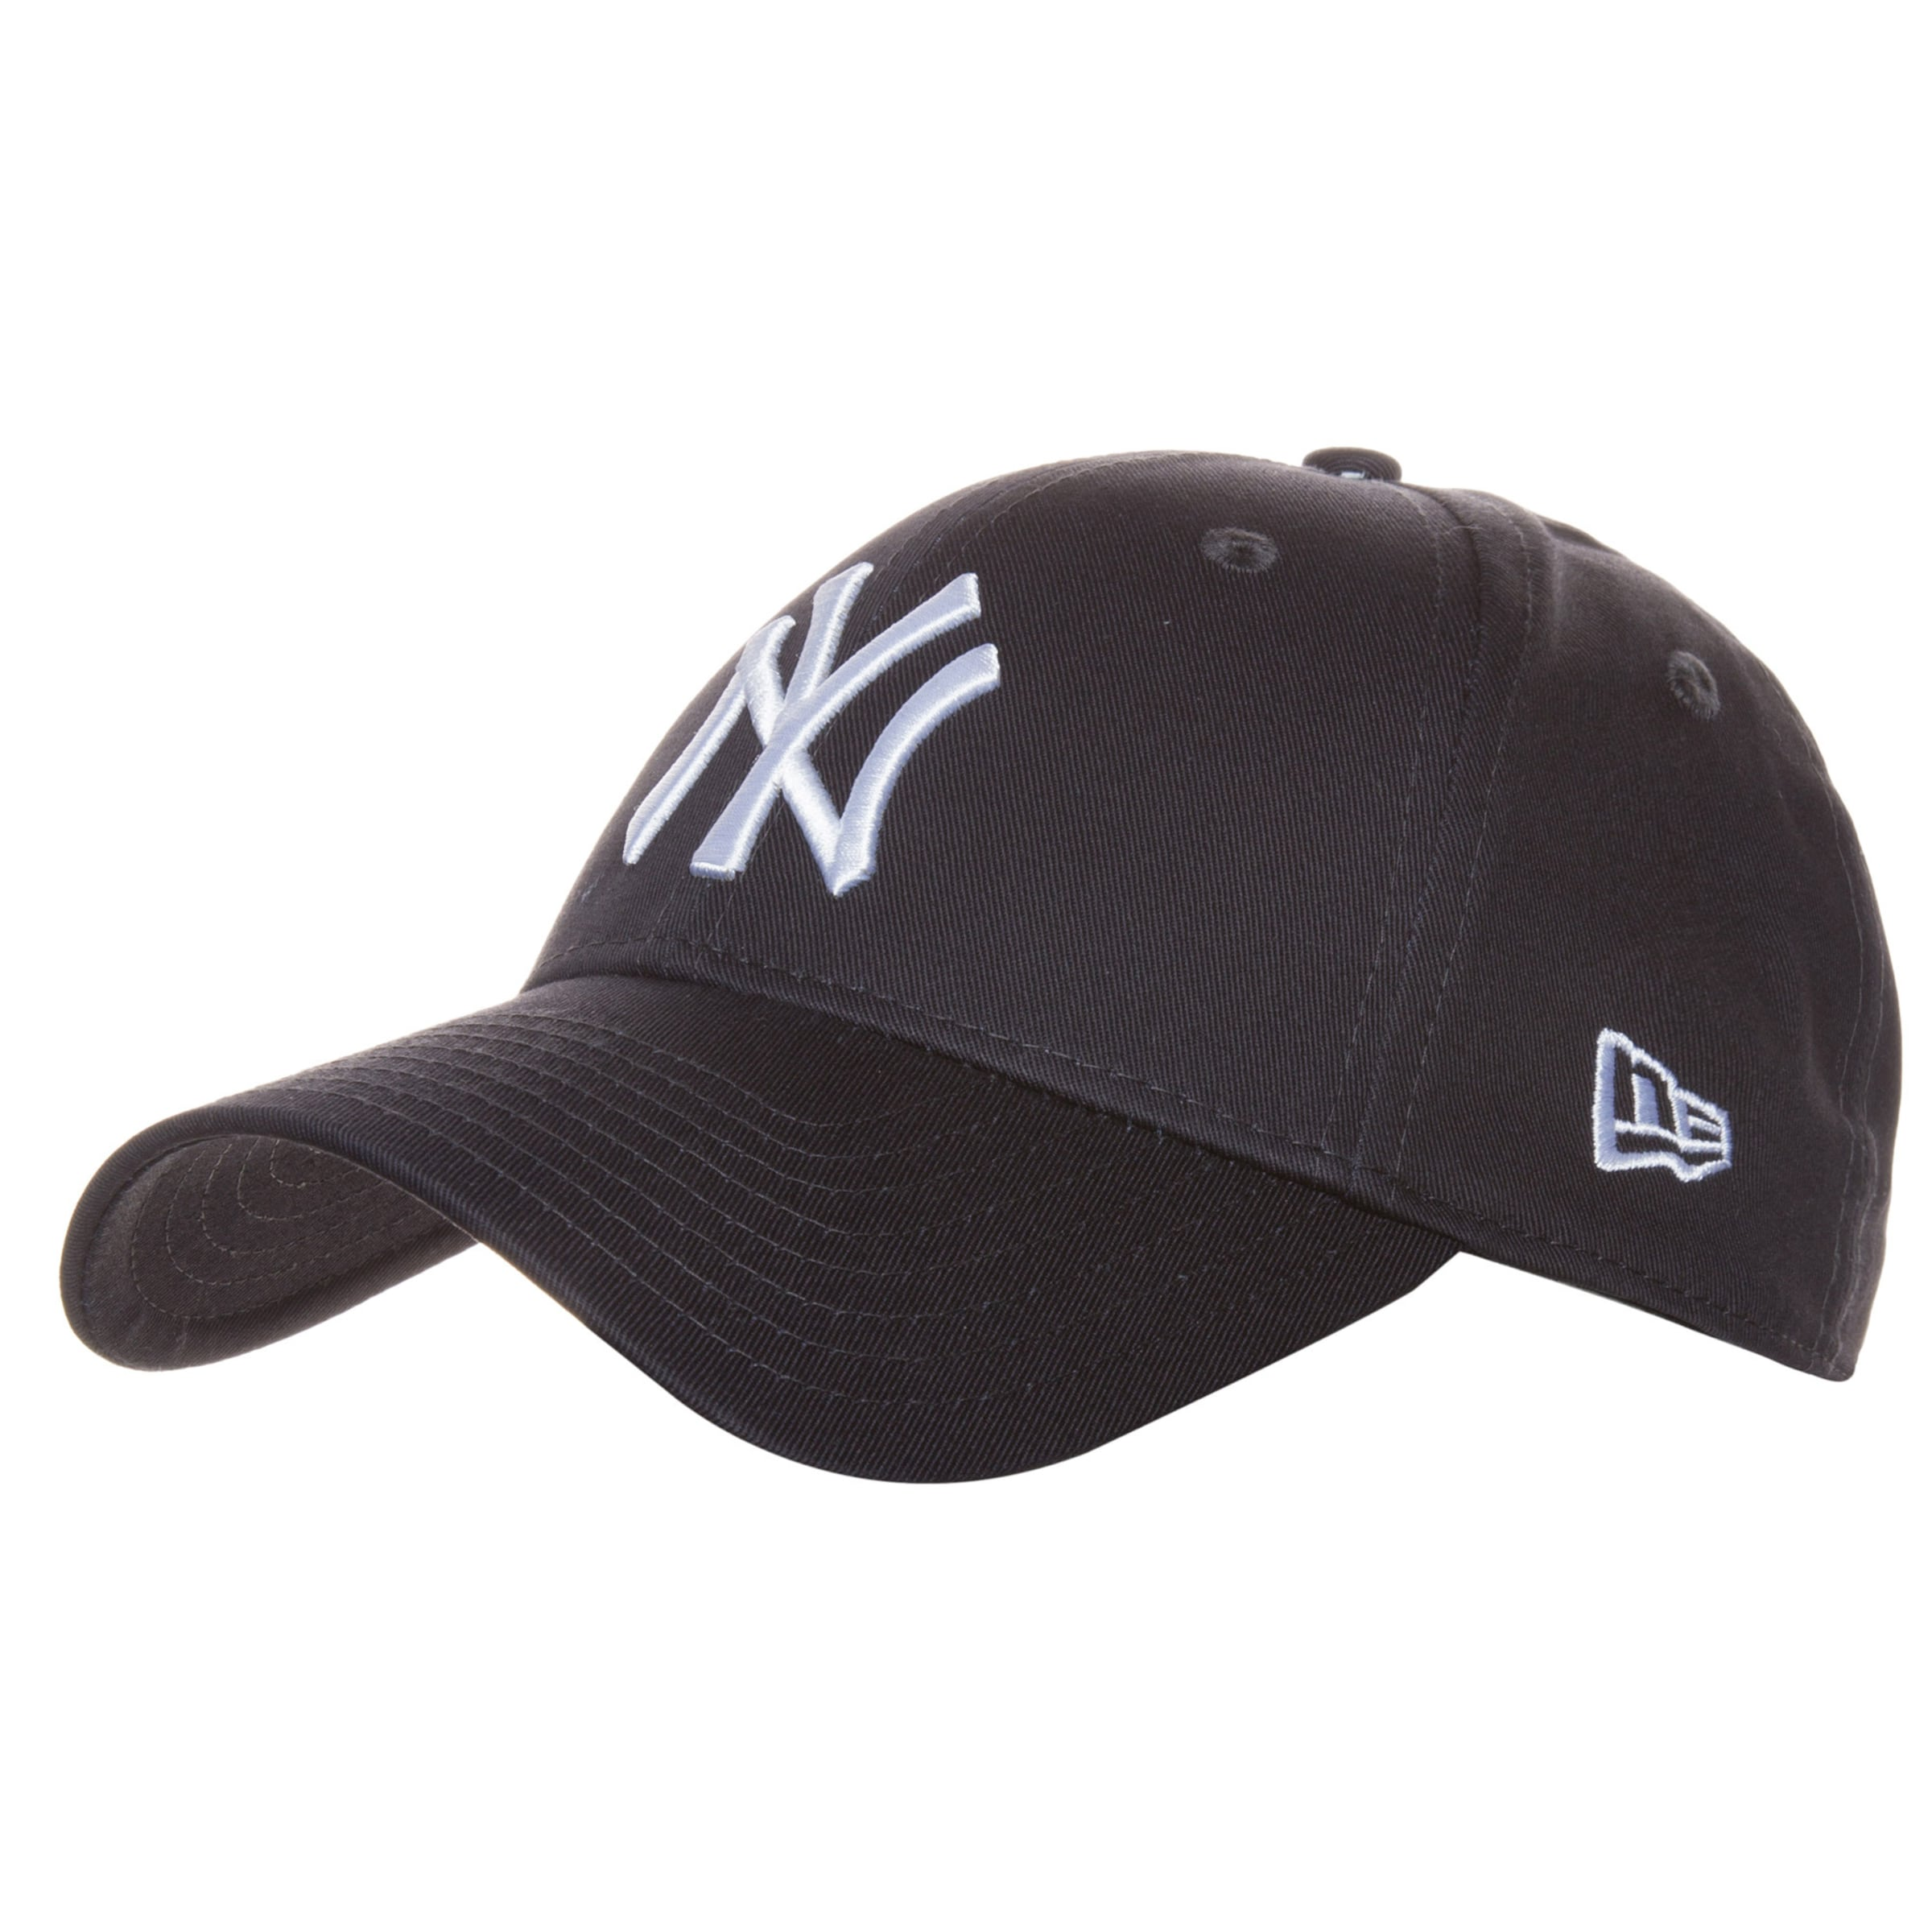 NavyWit League Yankees' New York '9forty Era In Pet Basic fgb6y7